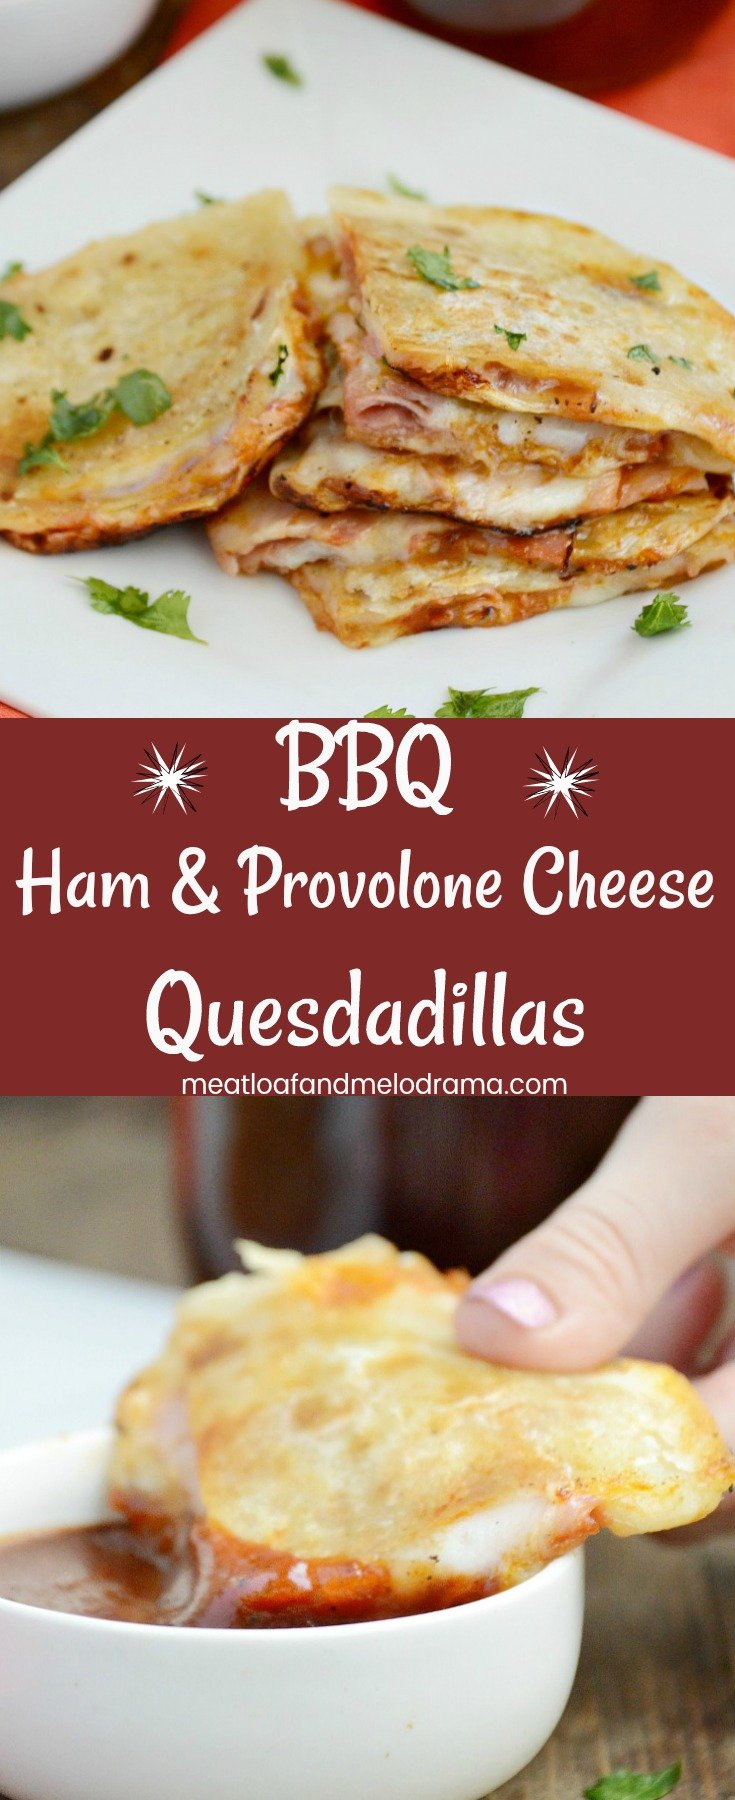 BBQ Ham and Provolone Cheese Quesadillas - A quick and easy lunch, dinner or snack made with deli ham, provolone cheese and barbecue sauce. Takes 5 minutes to make and kids love it!